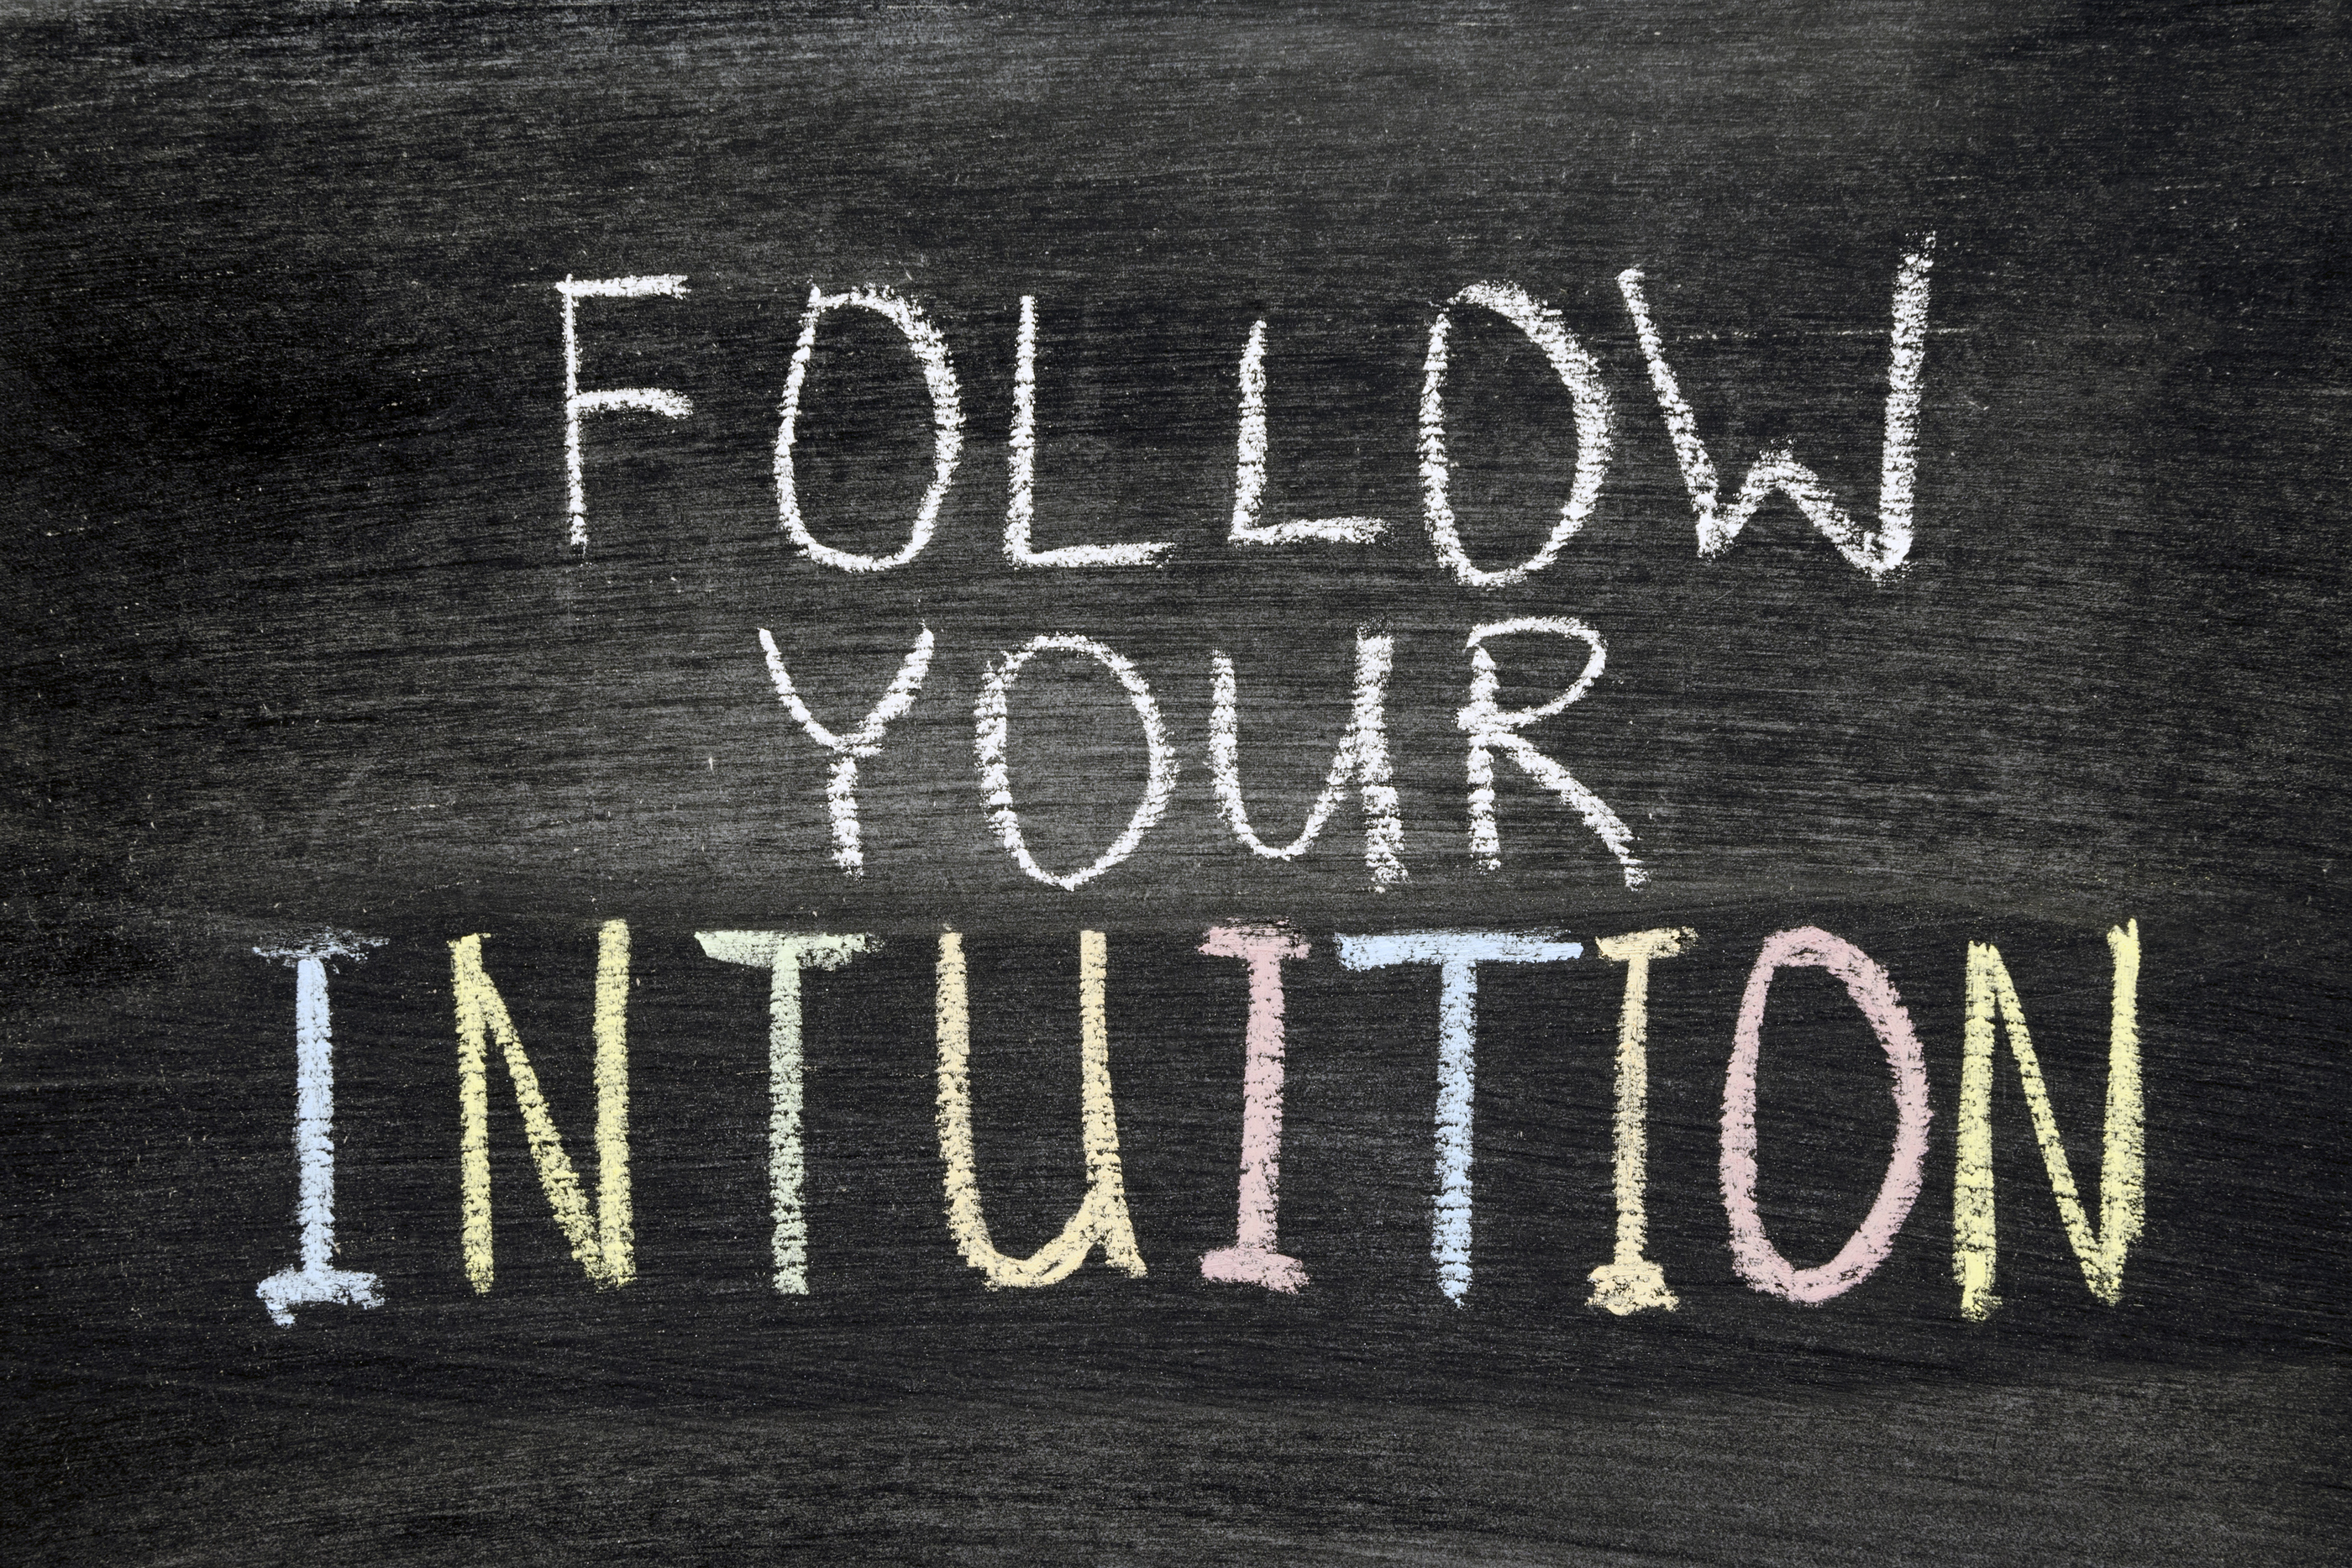 Your Business Gold Is Your Intuition Lisa Lajoie